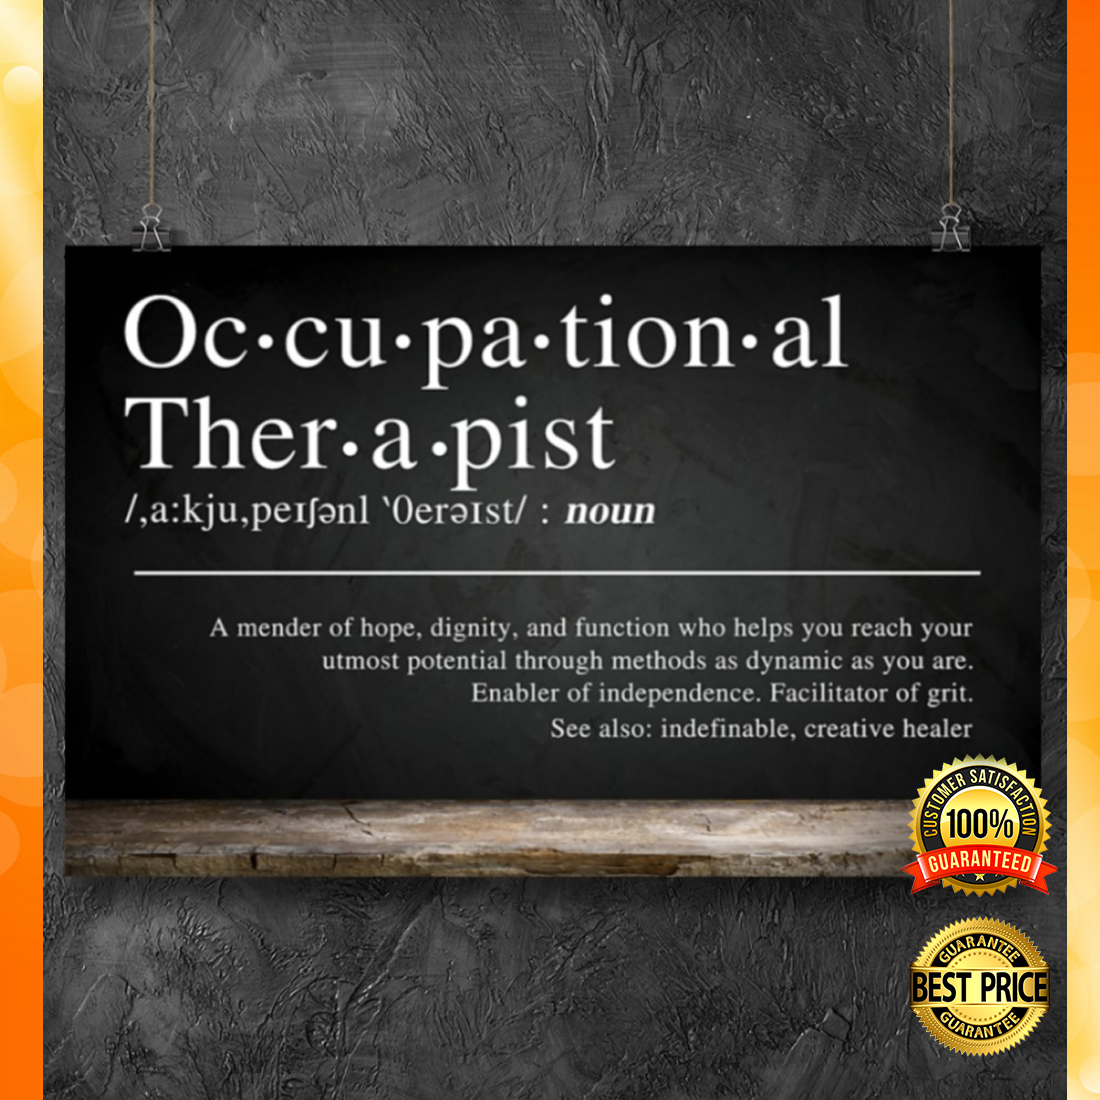 Occupational therapist definition poster 5